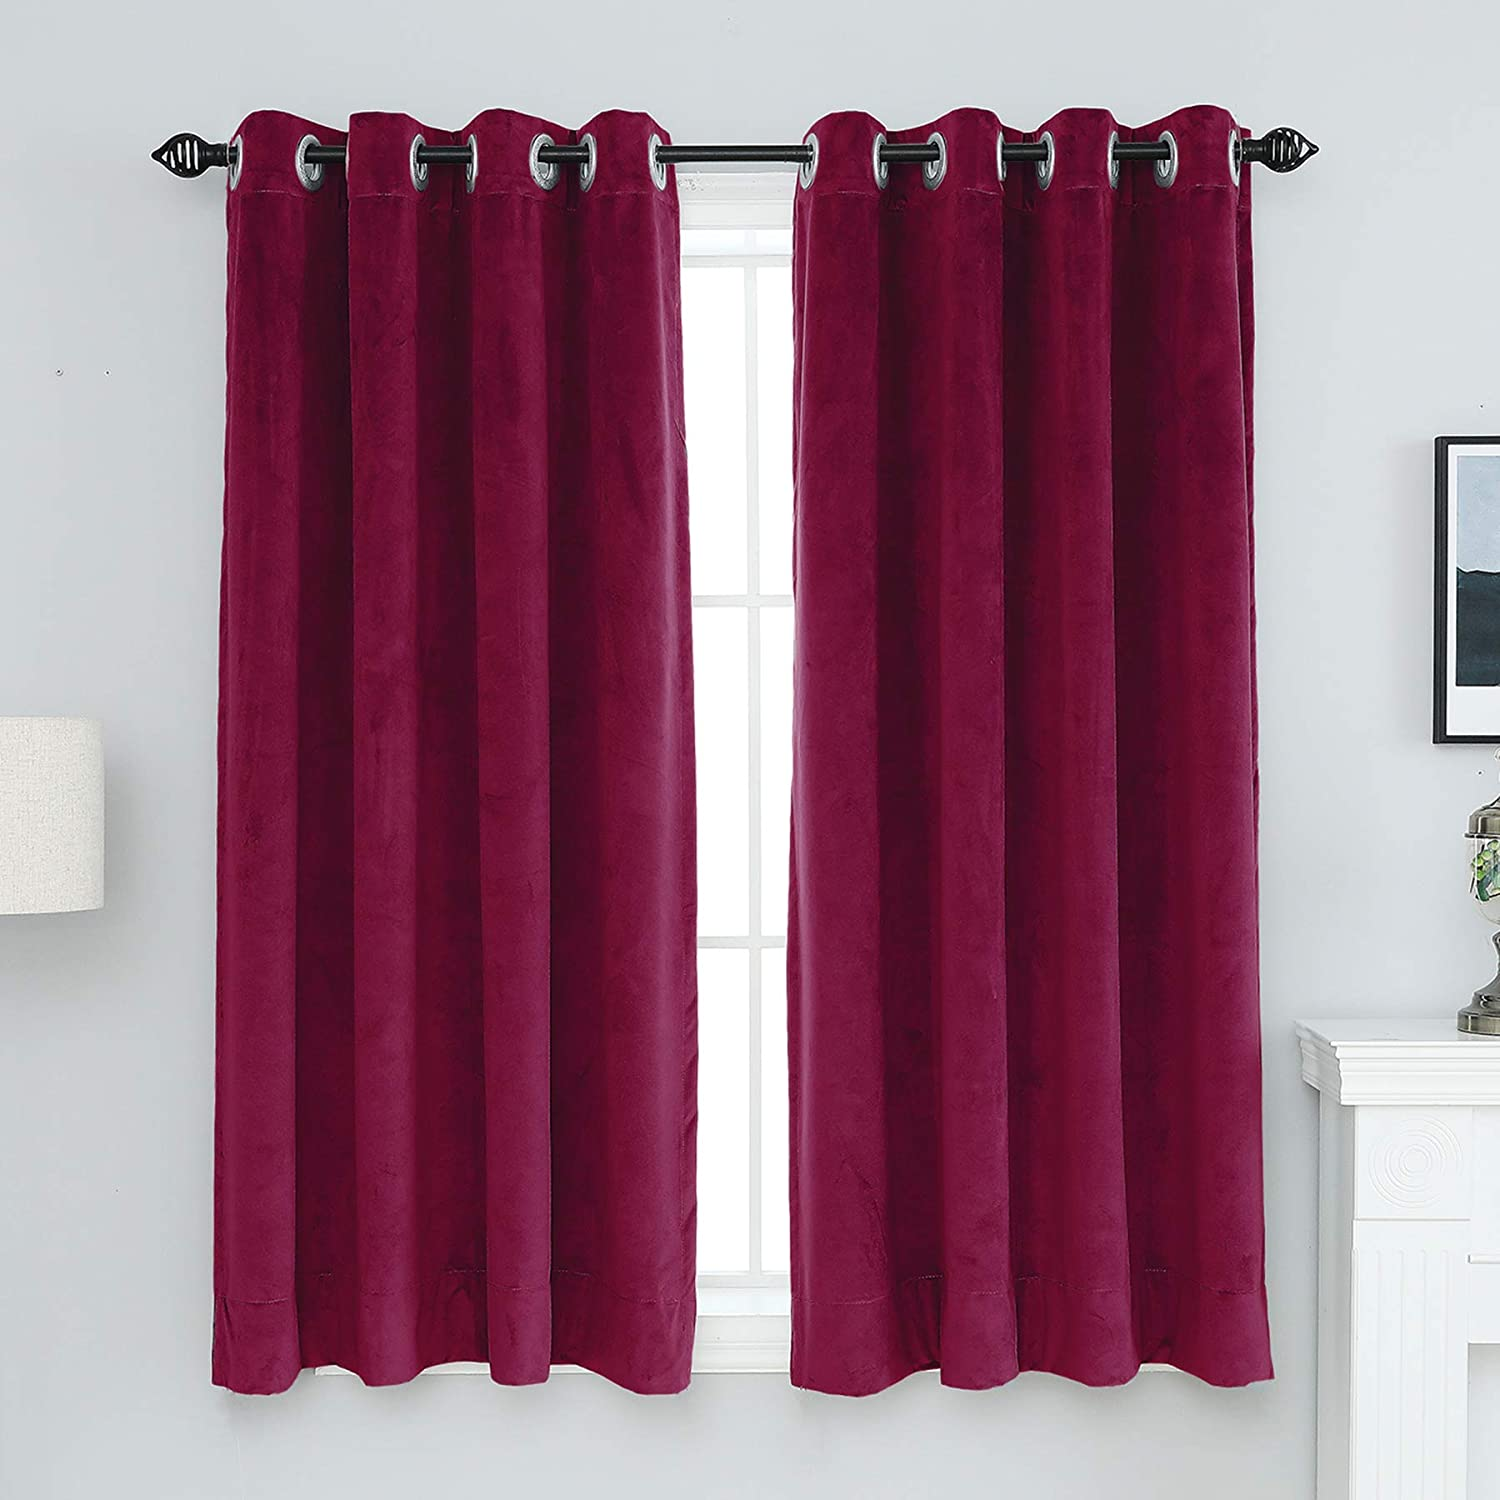 XIANYU 100% Blackout Curtains for Living 卸直営 Room Thermal 超定番 Bedroom In